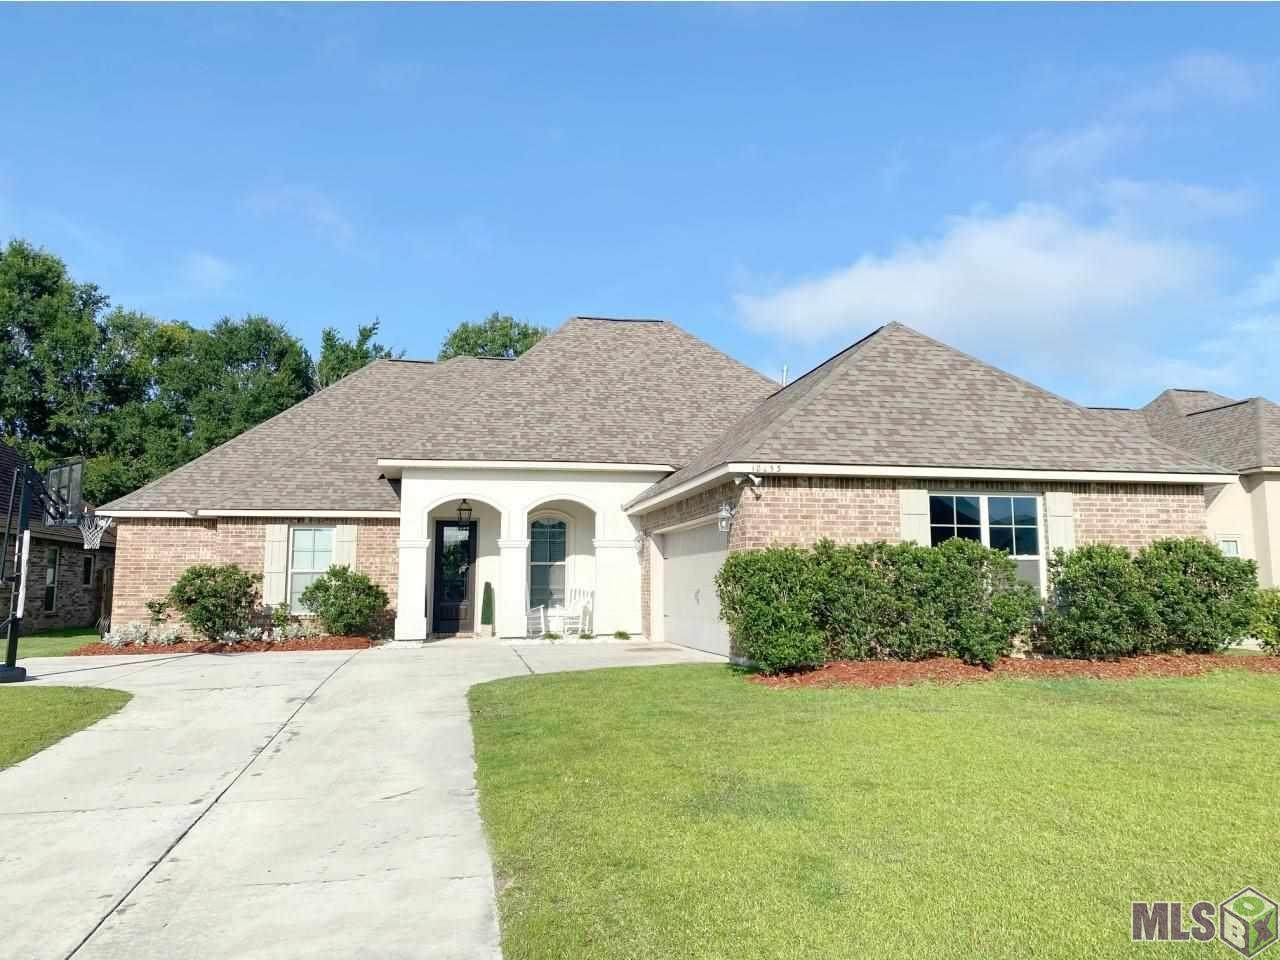 18053 Old Trail Dr - Photo 1